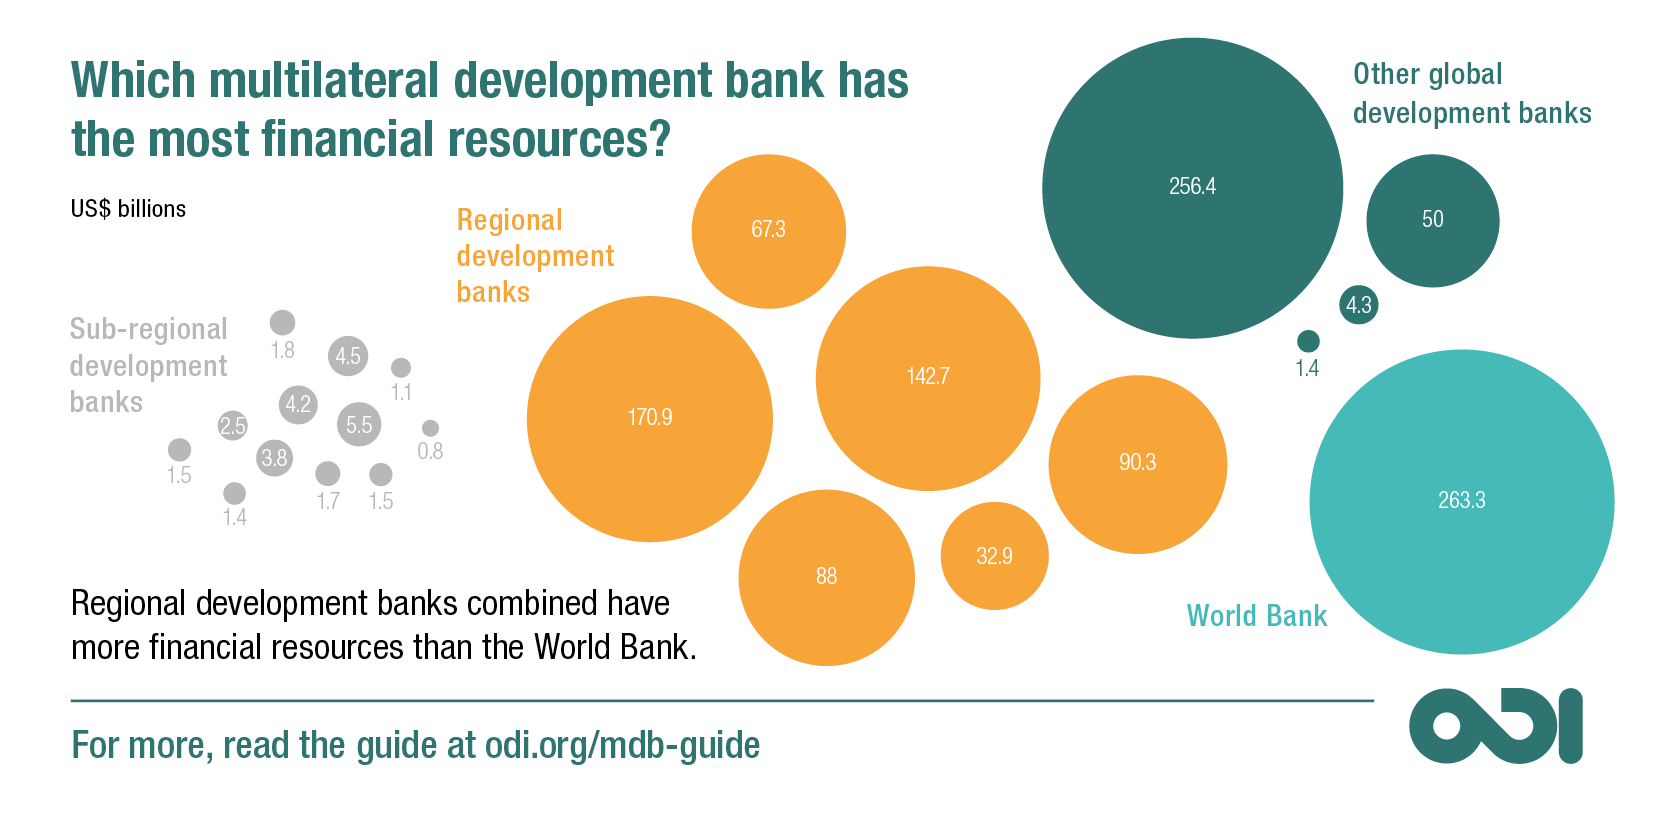 Which multilateral development bank has the most financial resources?